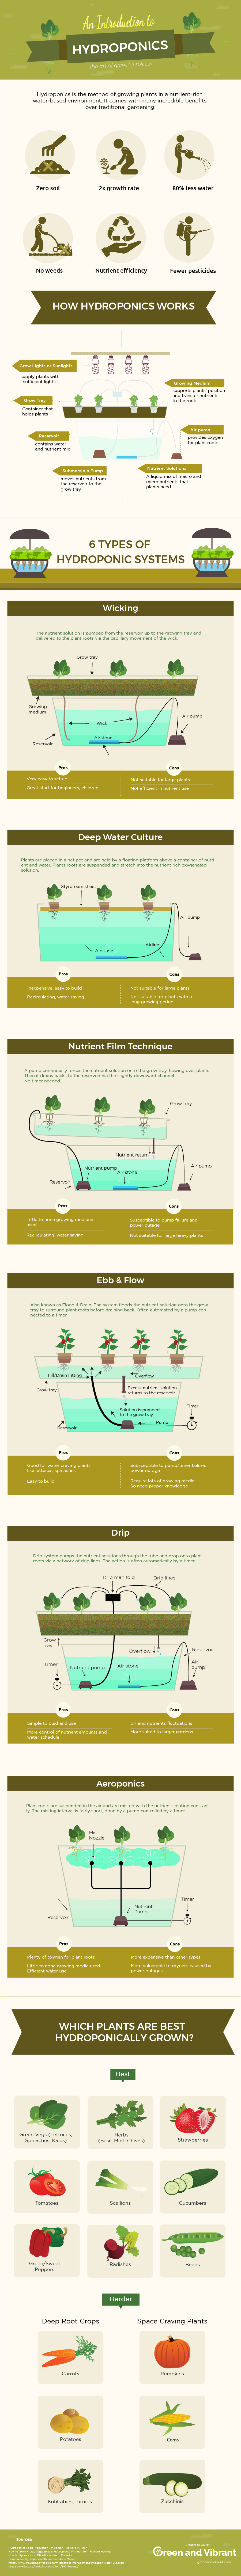 hydroponic-gardening-infographic